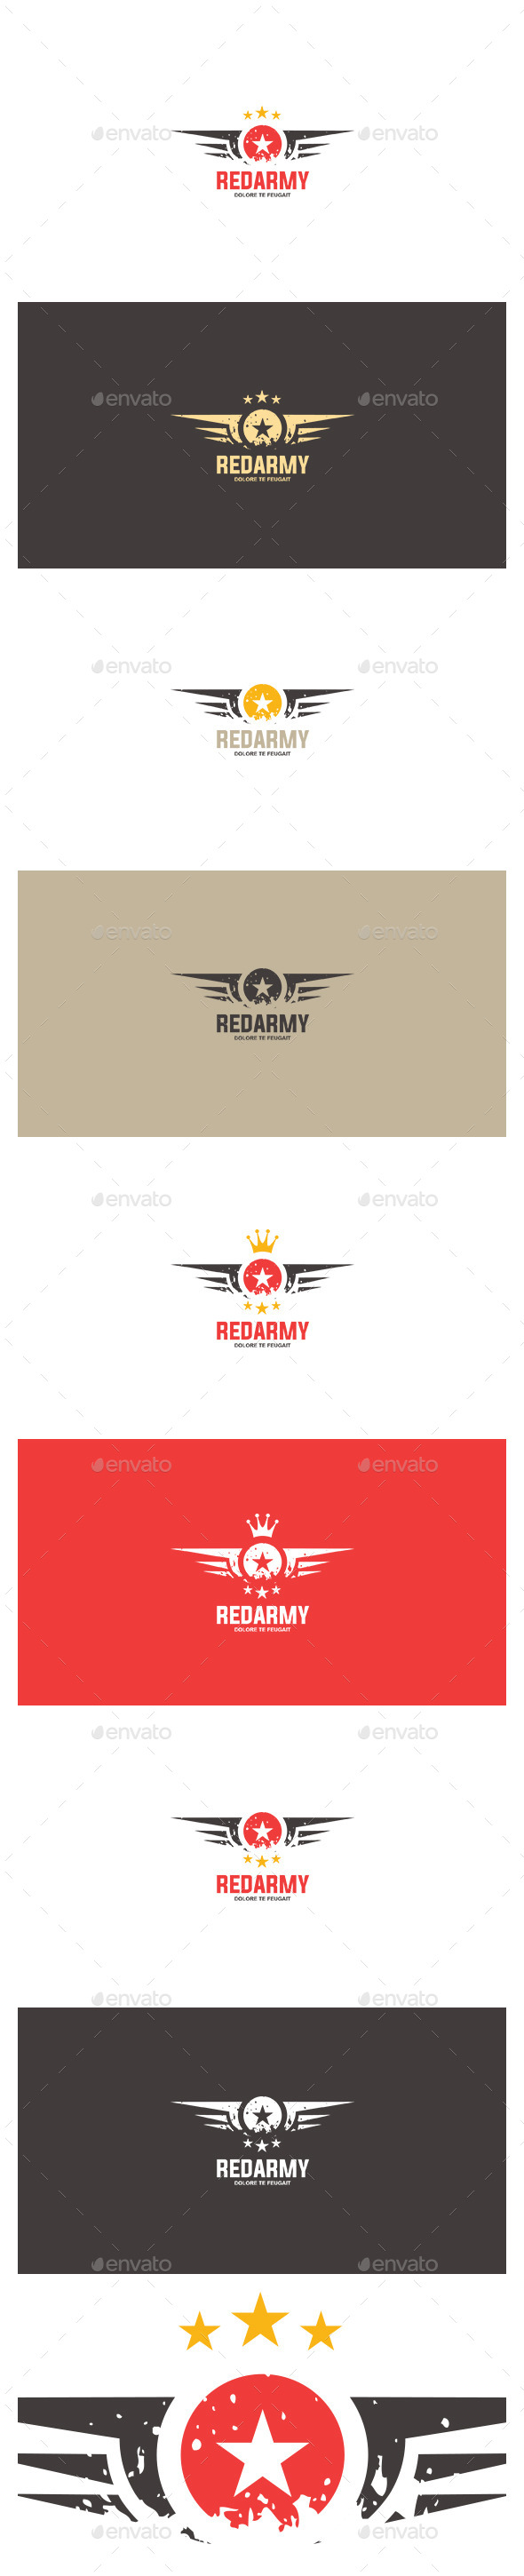 GraphicRiver Red Army Logo Template 8871039